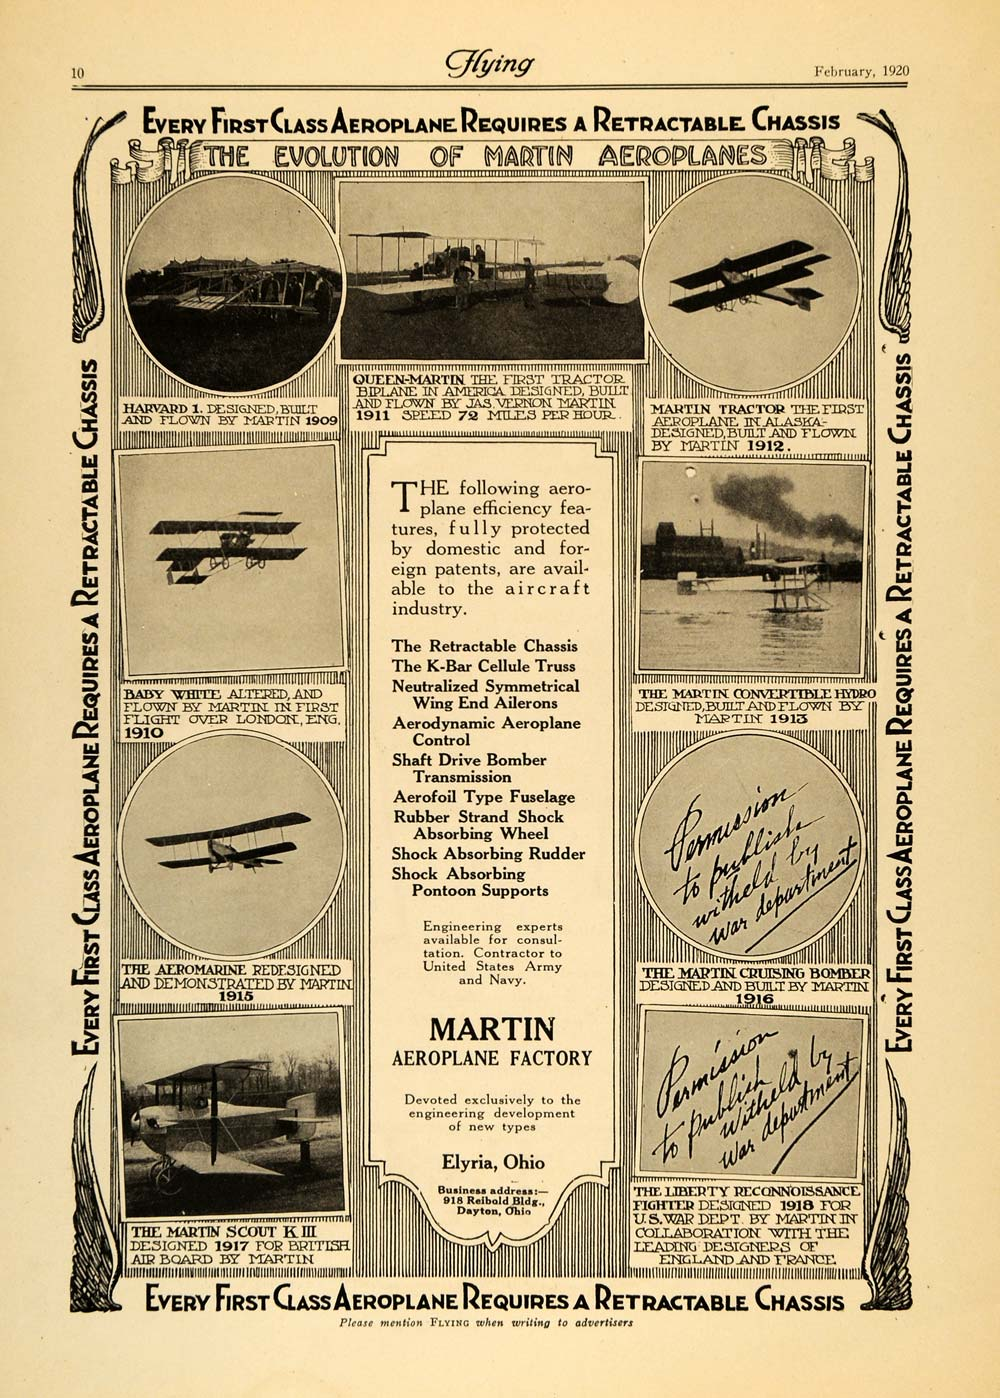 1920 Ad Martin Aeroplane Efficiency Features Chassis - ORIGINAL ADVERTISING FLY2